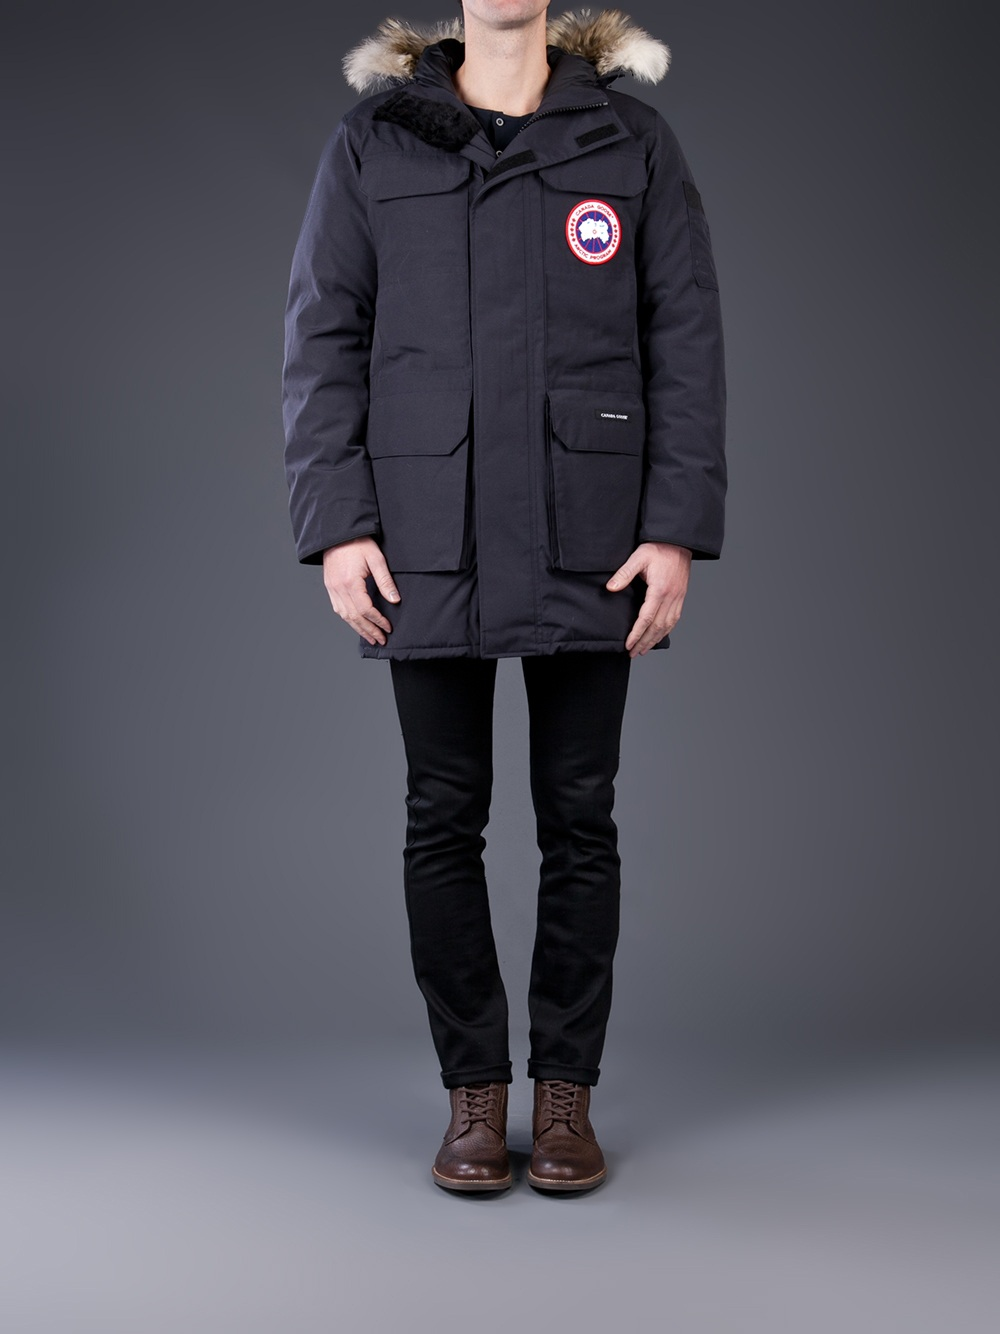 http://www.canada-goose.com/products-2/mens/banff-parka/